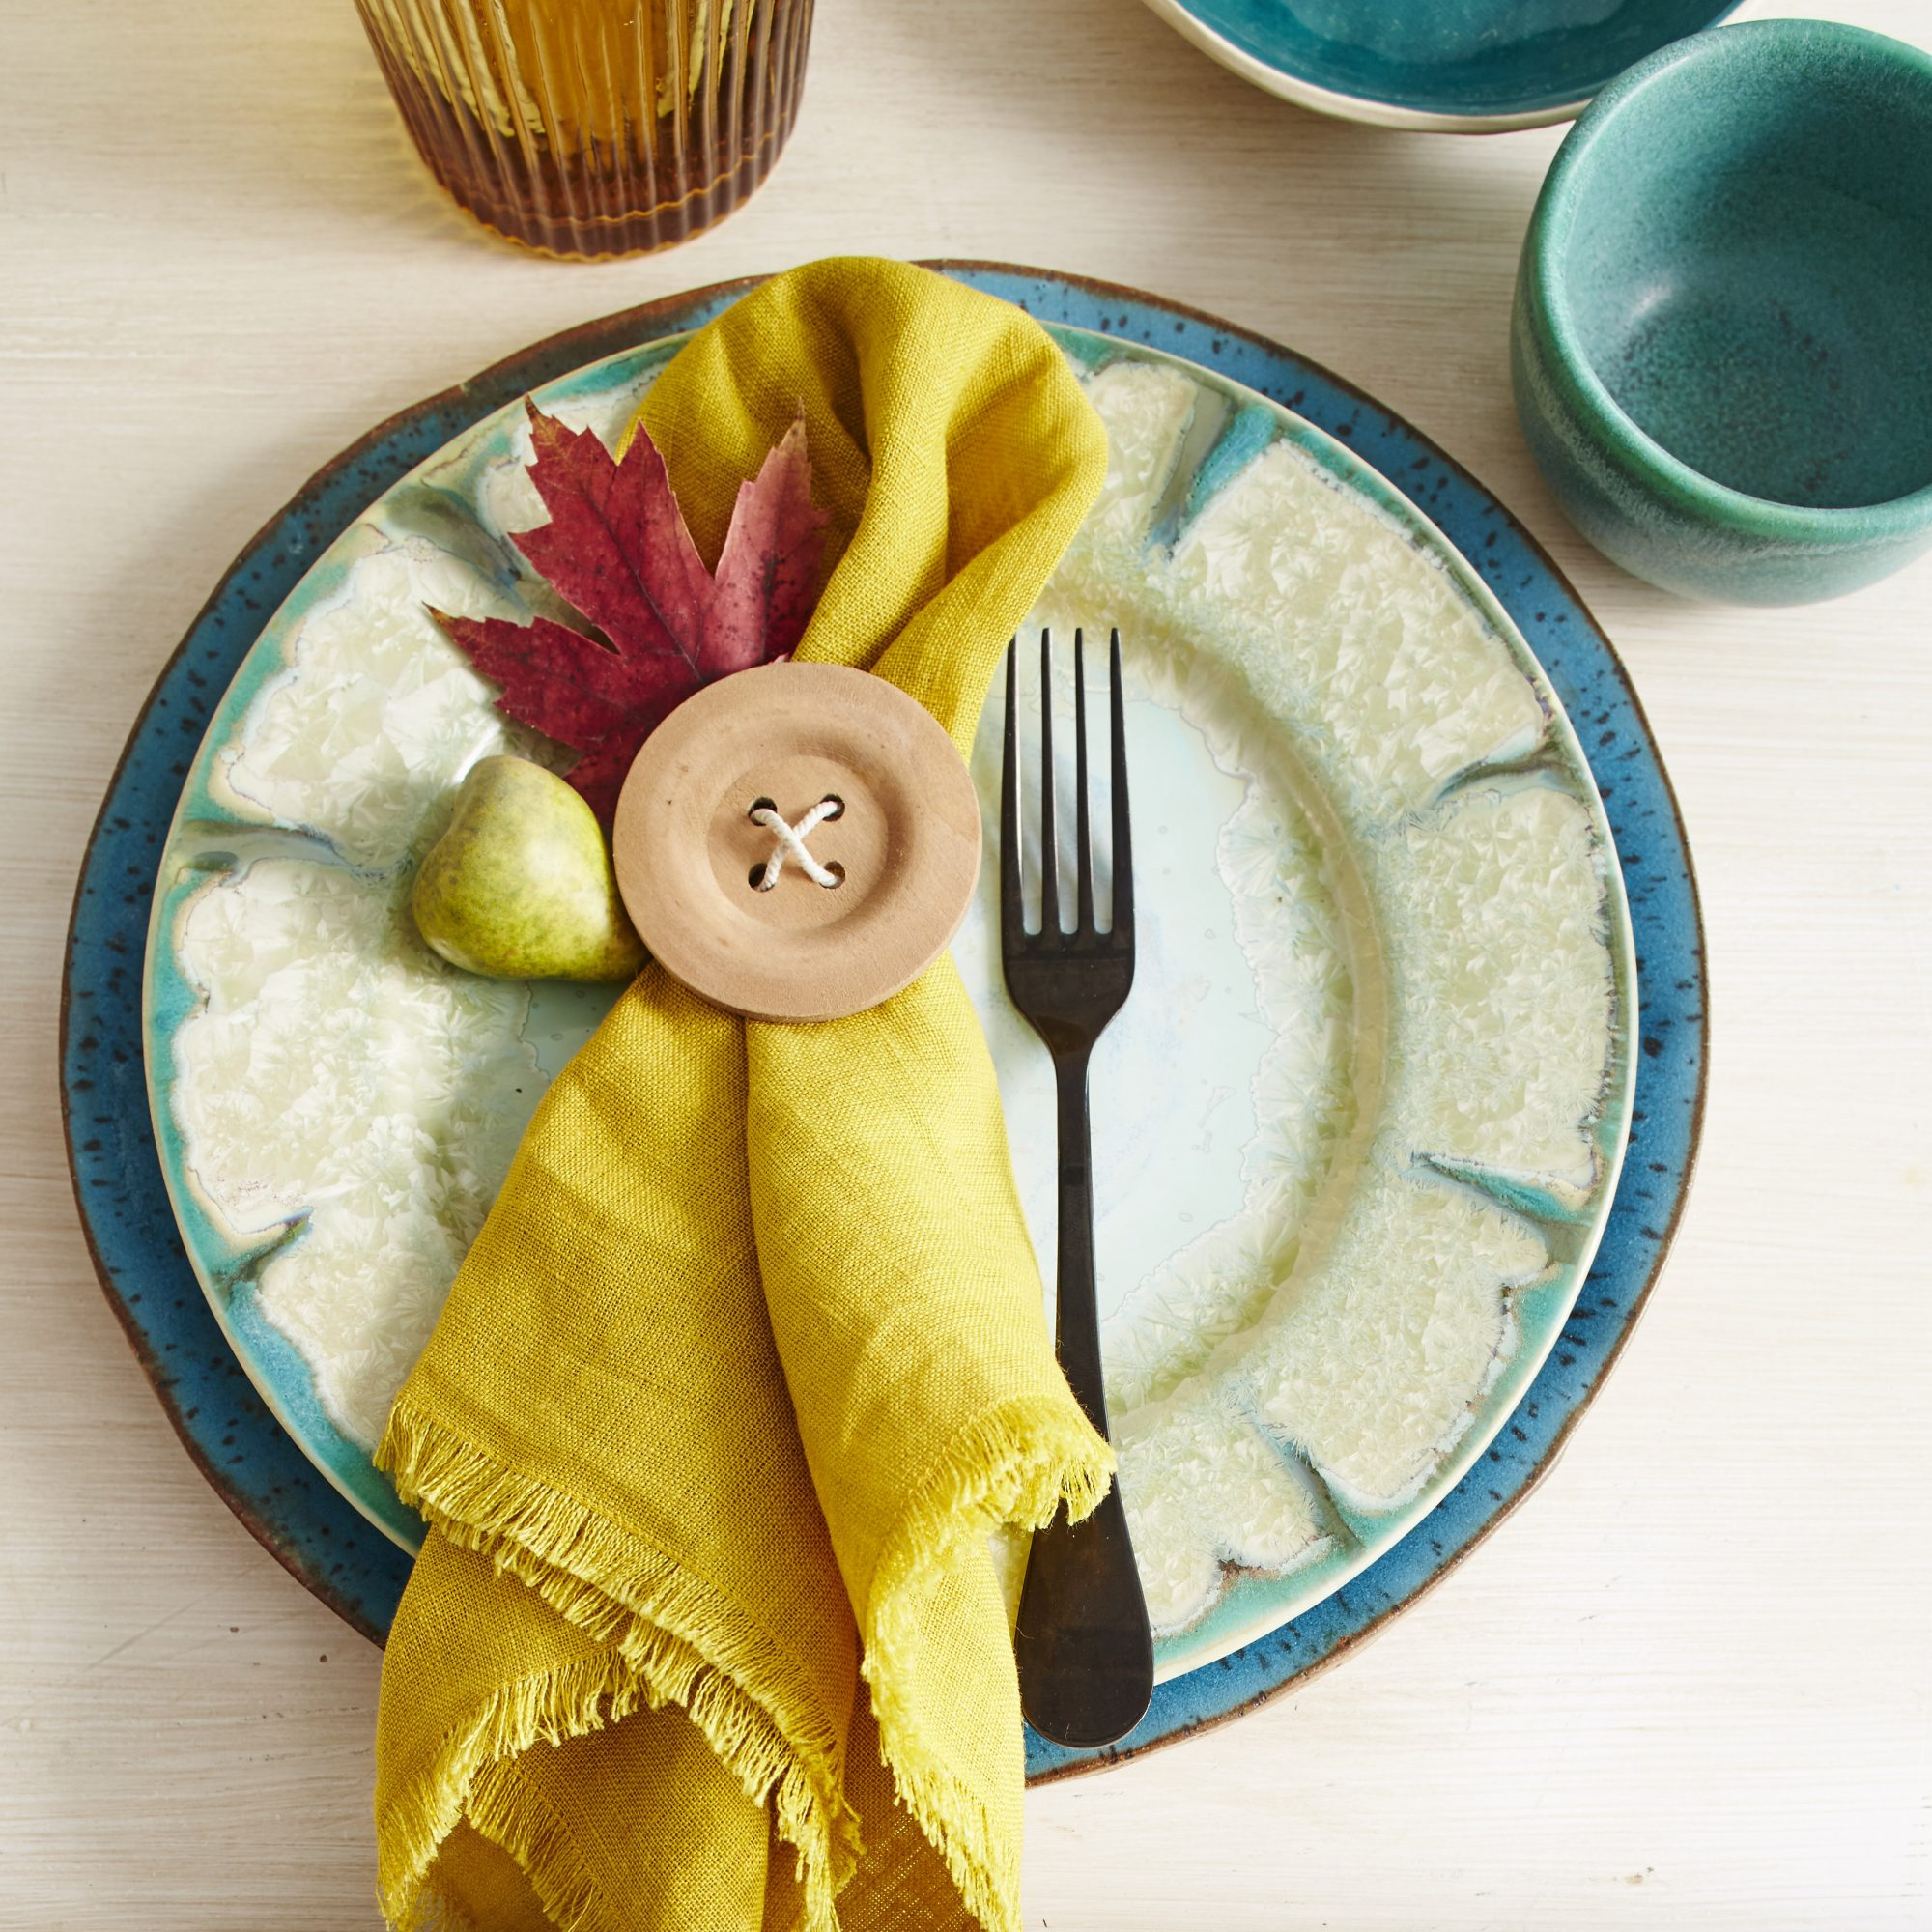 Cute-as-a-Button Place Settings